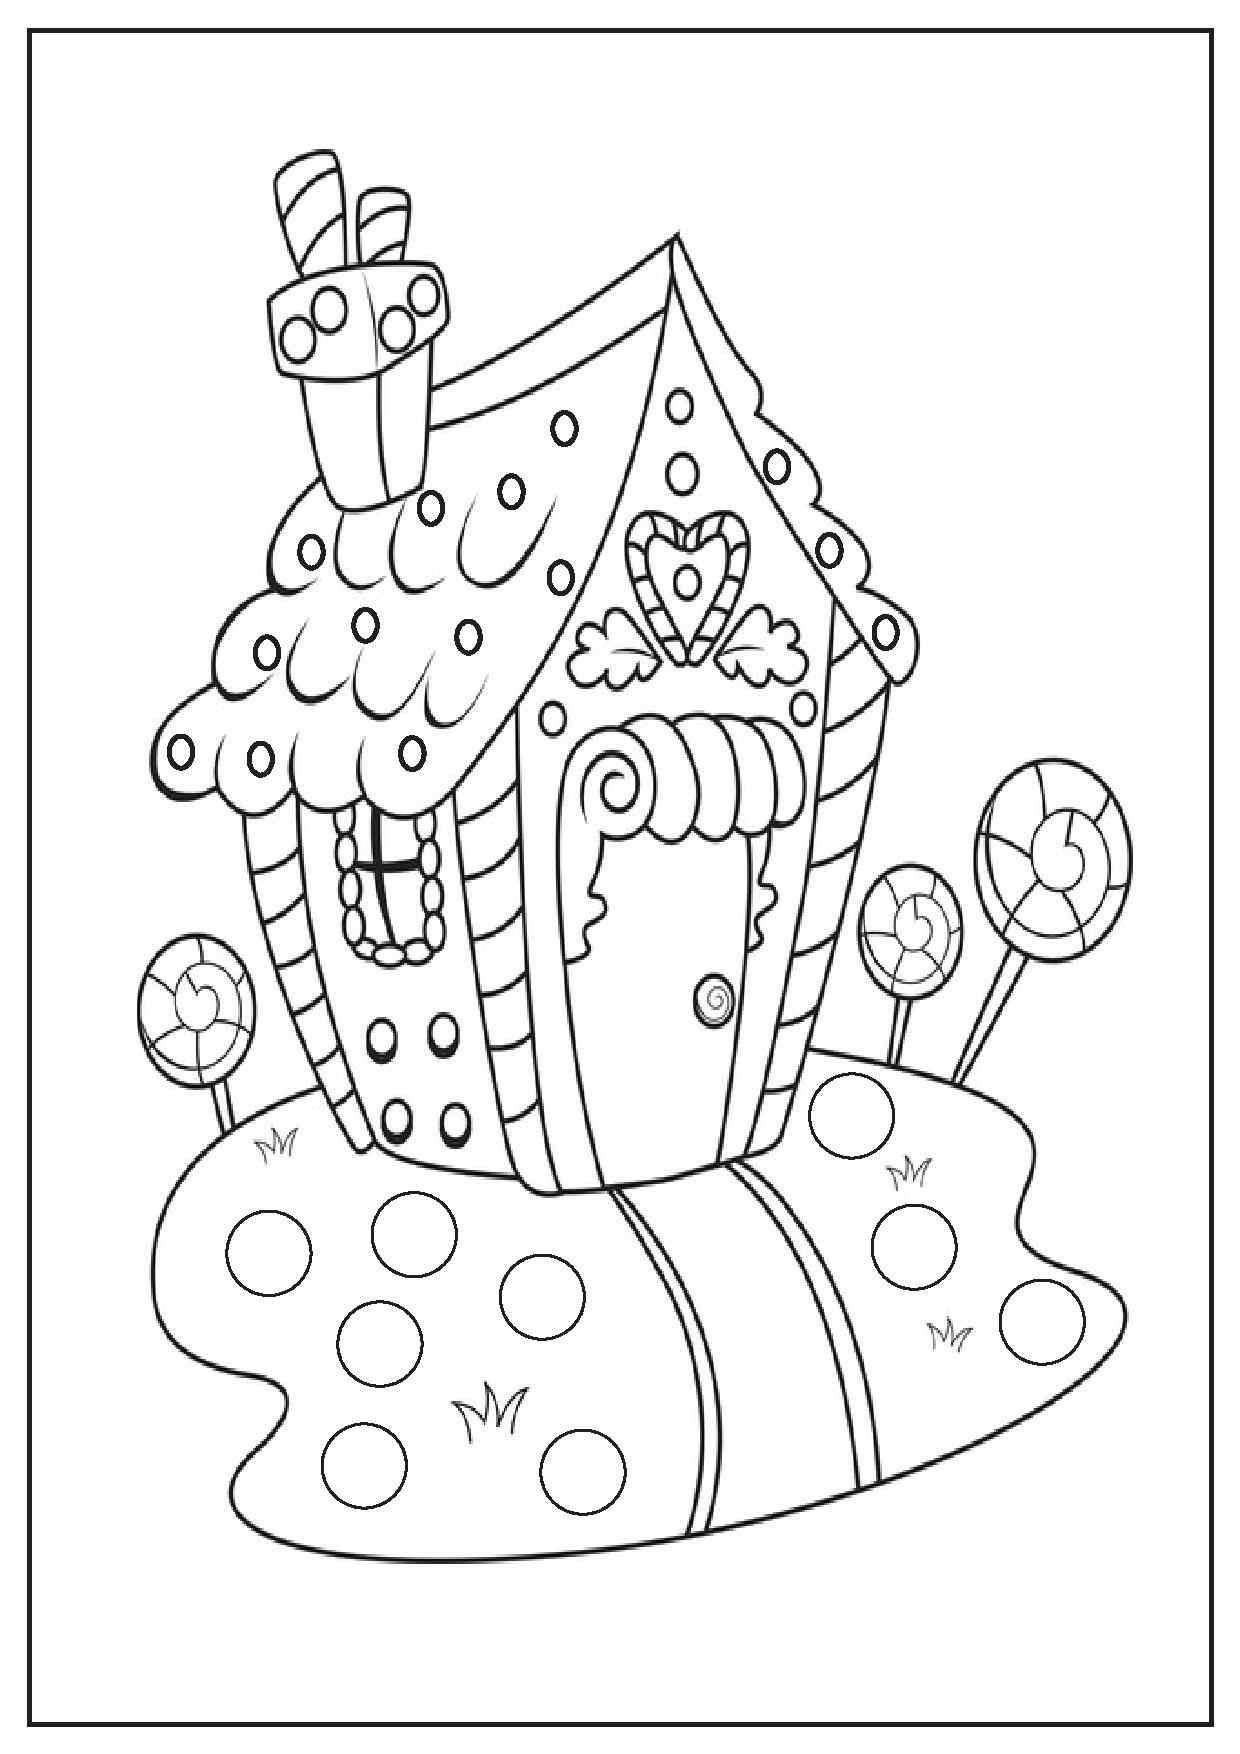 Printable coloring pages christmas - Christmas Worksheets Christmas Coloring Pages Printables